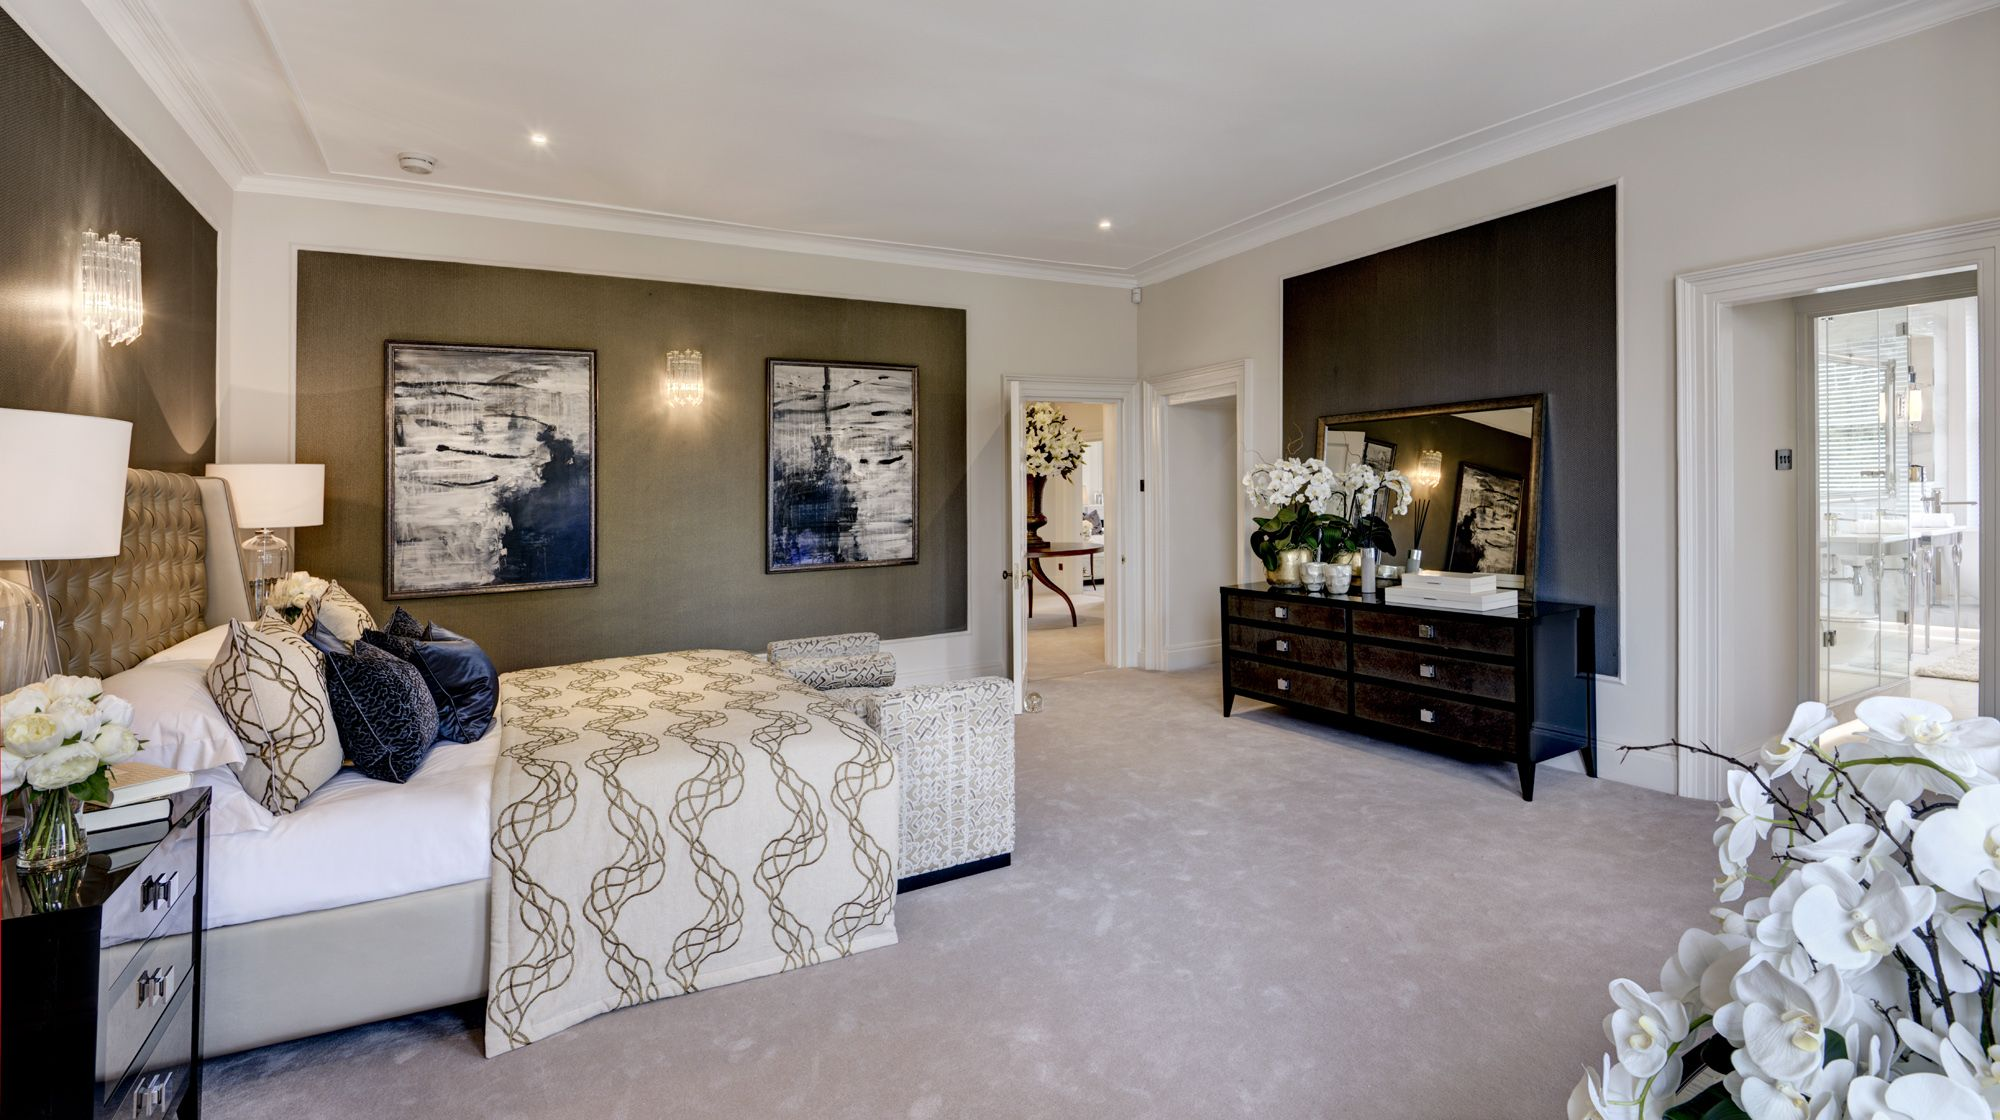 Master bedroom suite with wallpapered panelling in